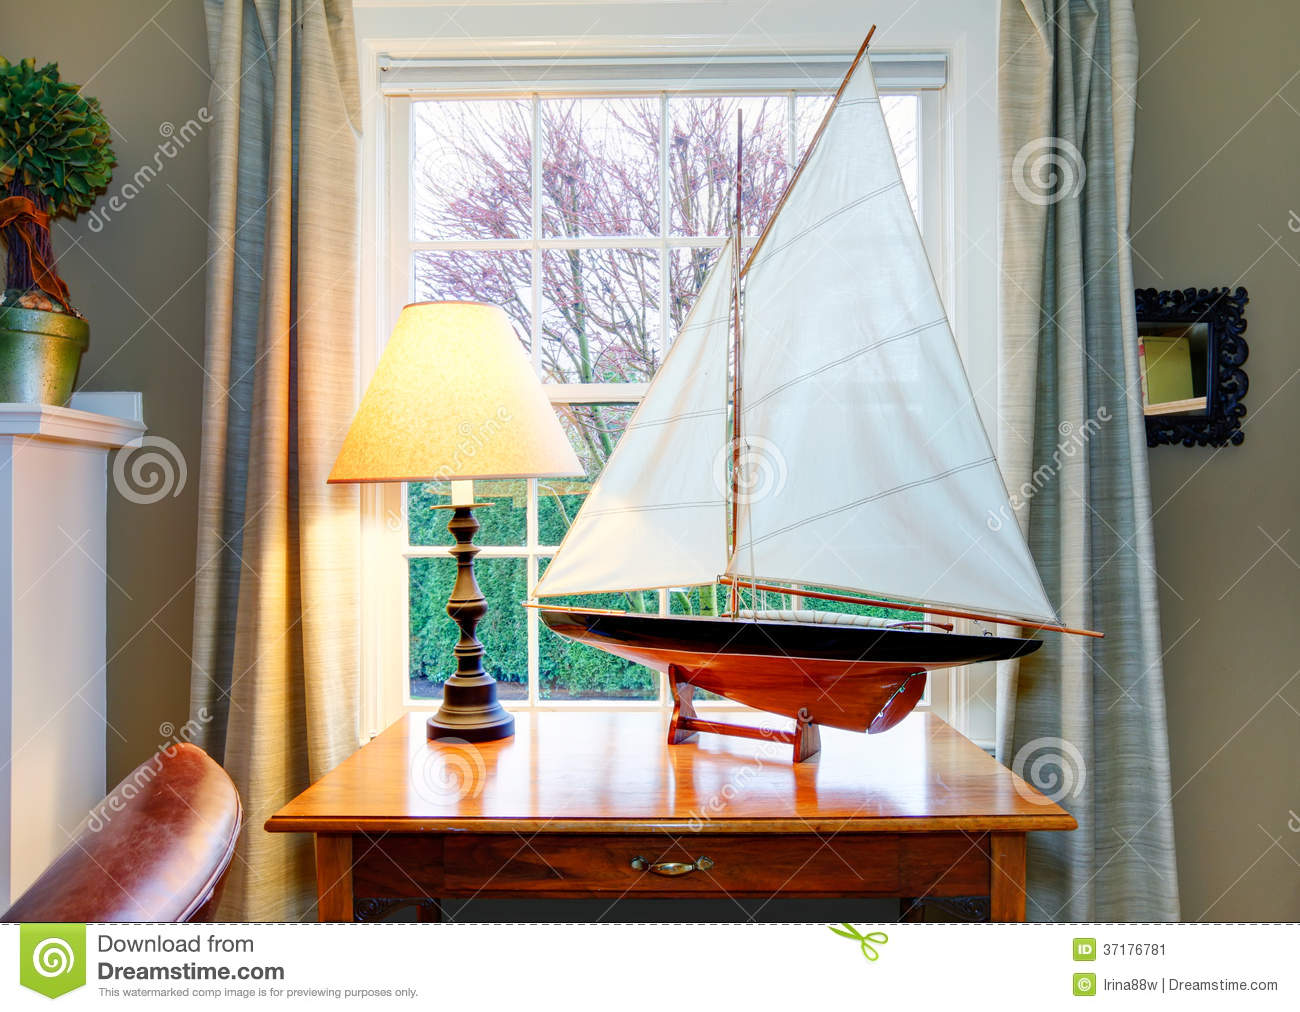 Handicraft Sailboat Great Decor Idea For Classic Living Room D Stock Image Image Of Furniture Decoration 37176781